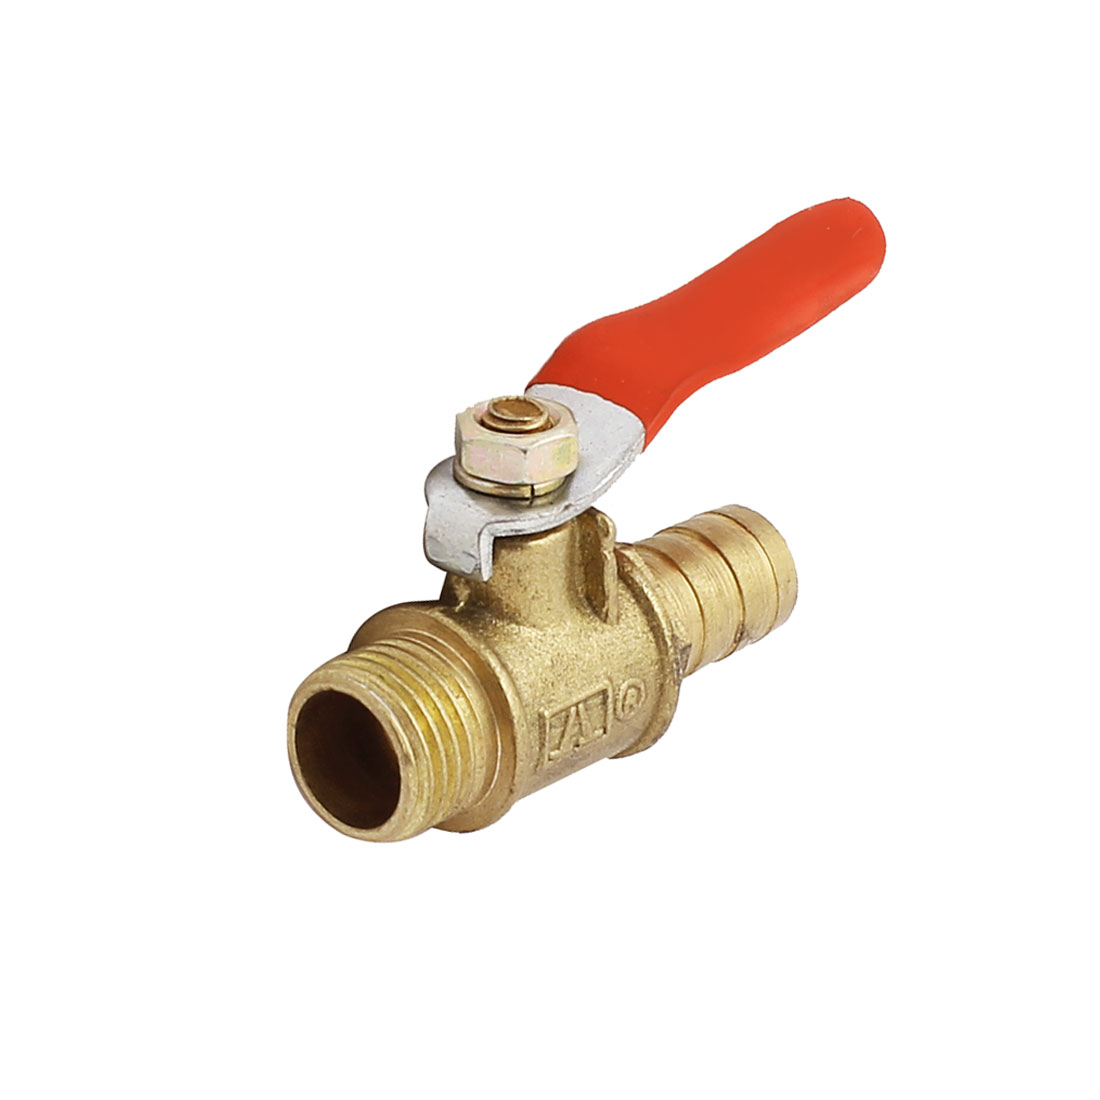 10mm Dia Outlet to 1/4PT Air Pneumatic Gas Flow Control Ball Valve